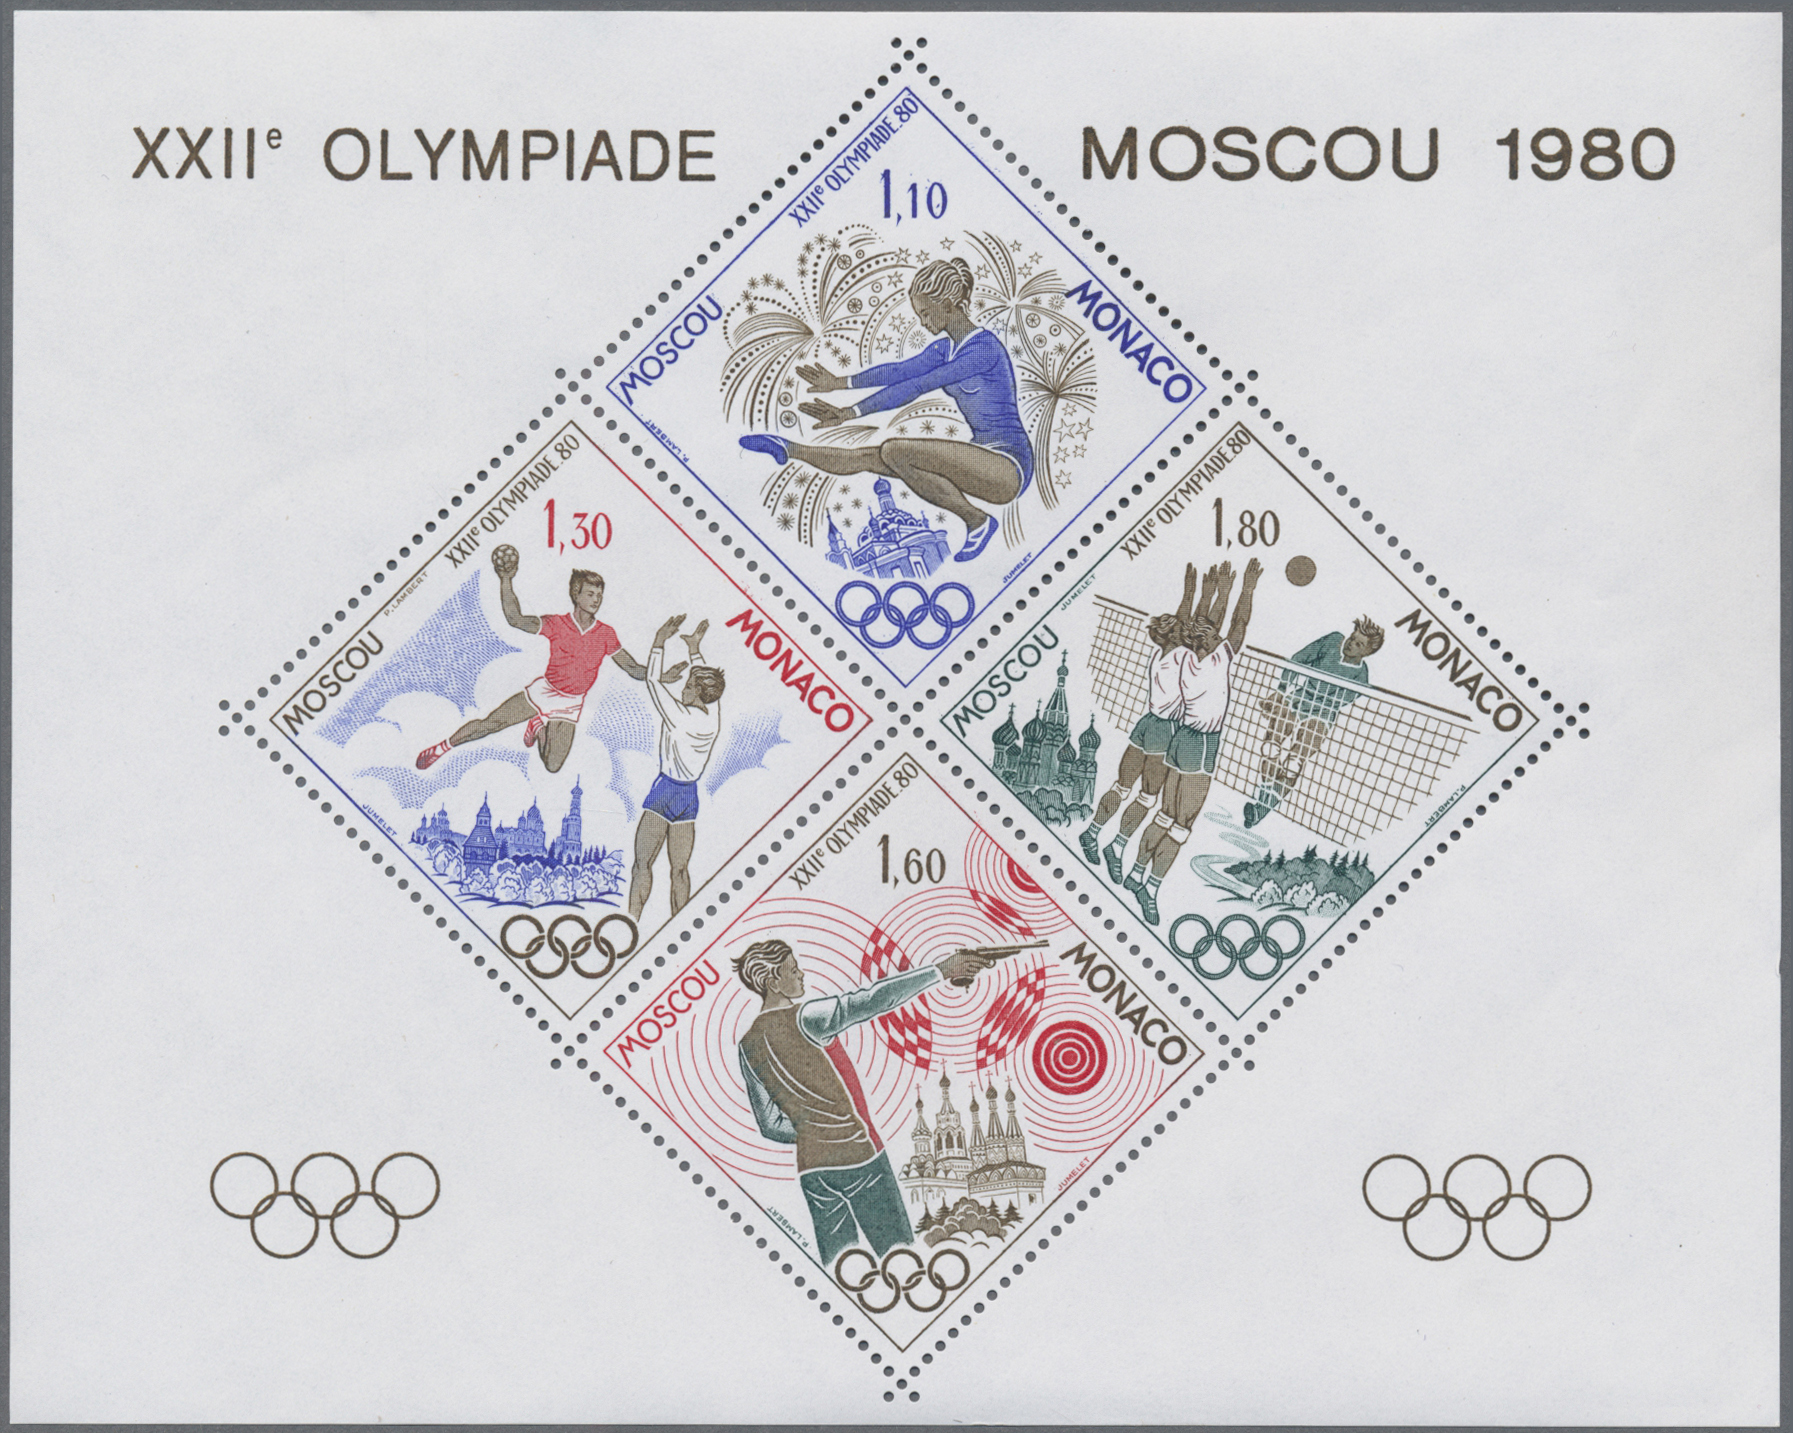 Lot 27015 - thematik: olympische spiele / olympic games  -  Auktionshaus Christoph Gärtner GmbH & Co. KG Sale #46 Gollcetions Germany - including the suplement